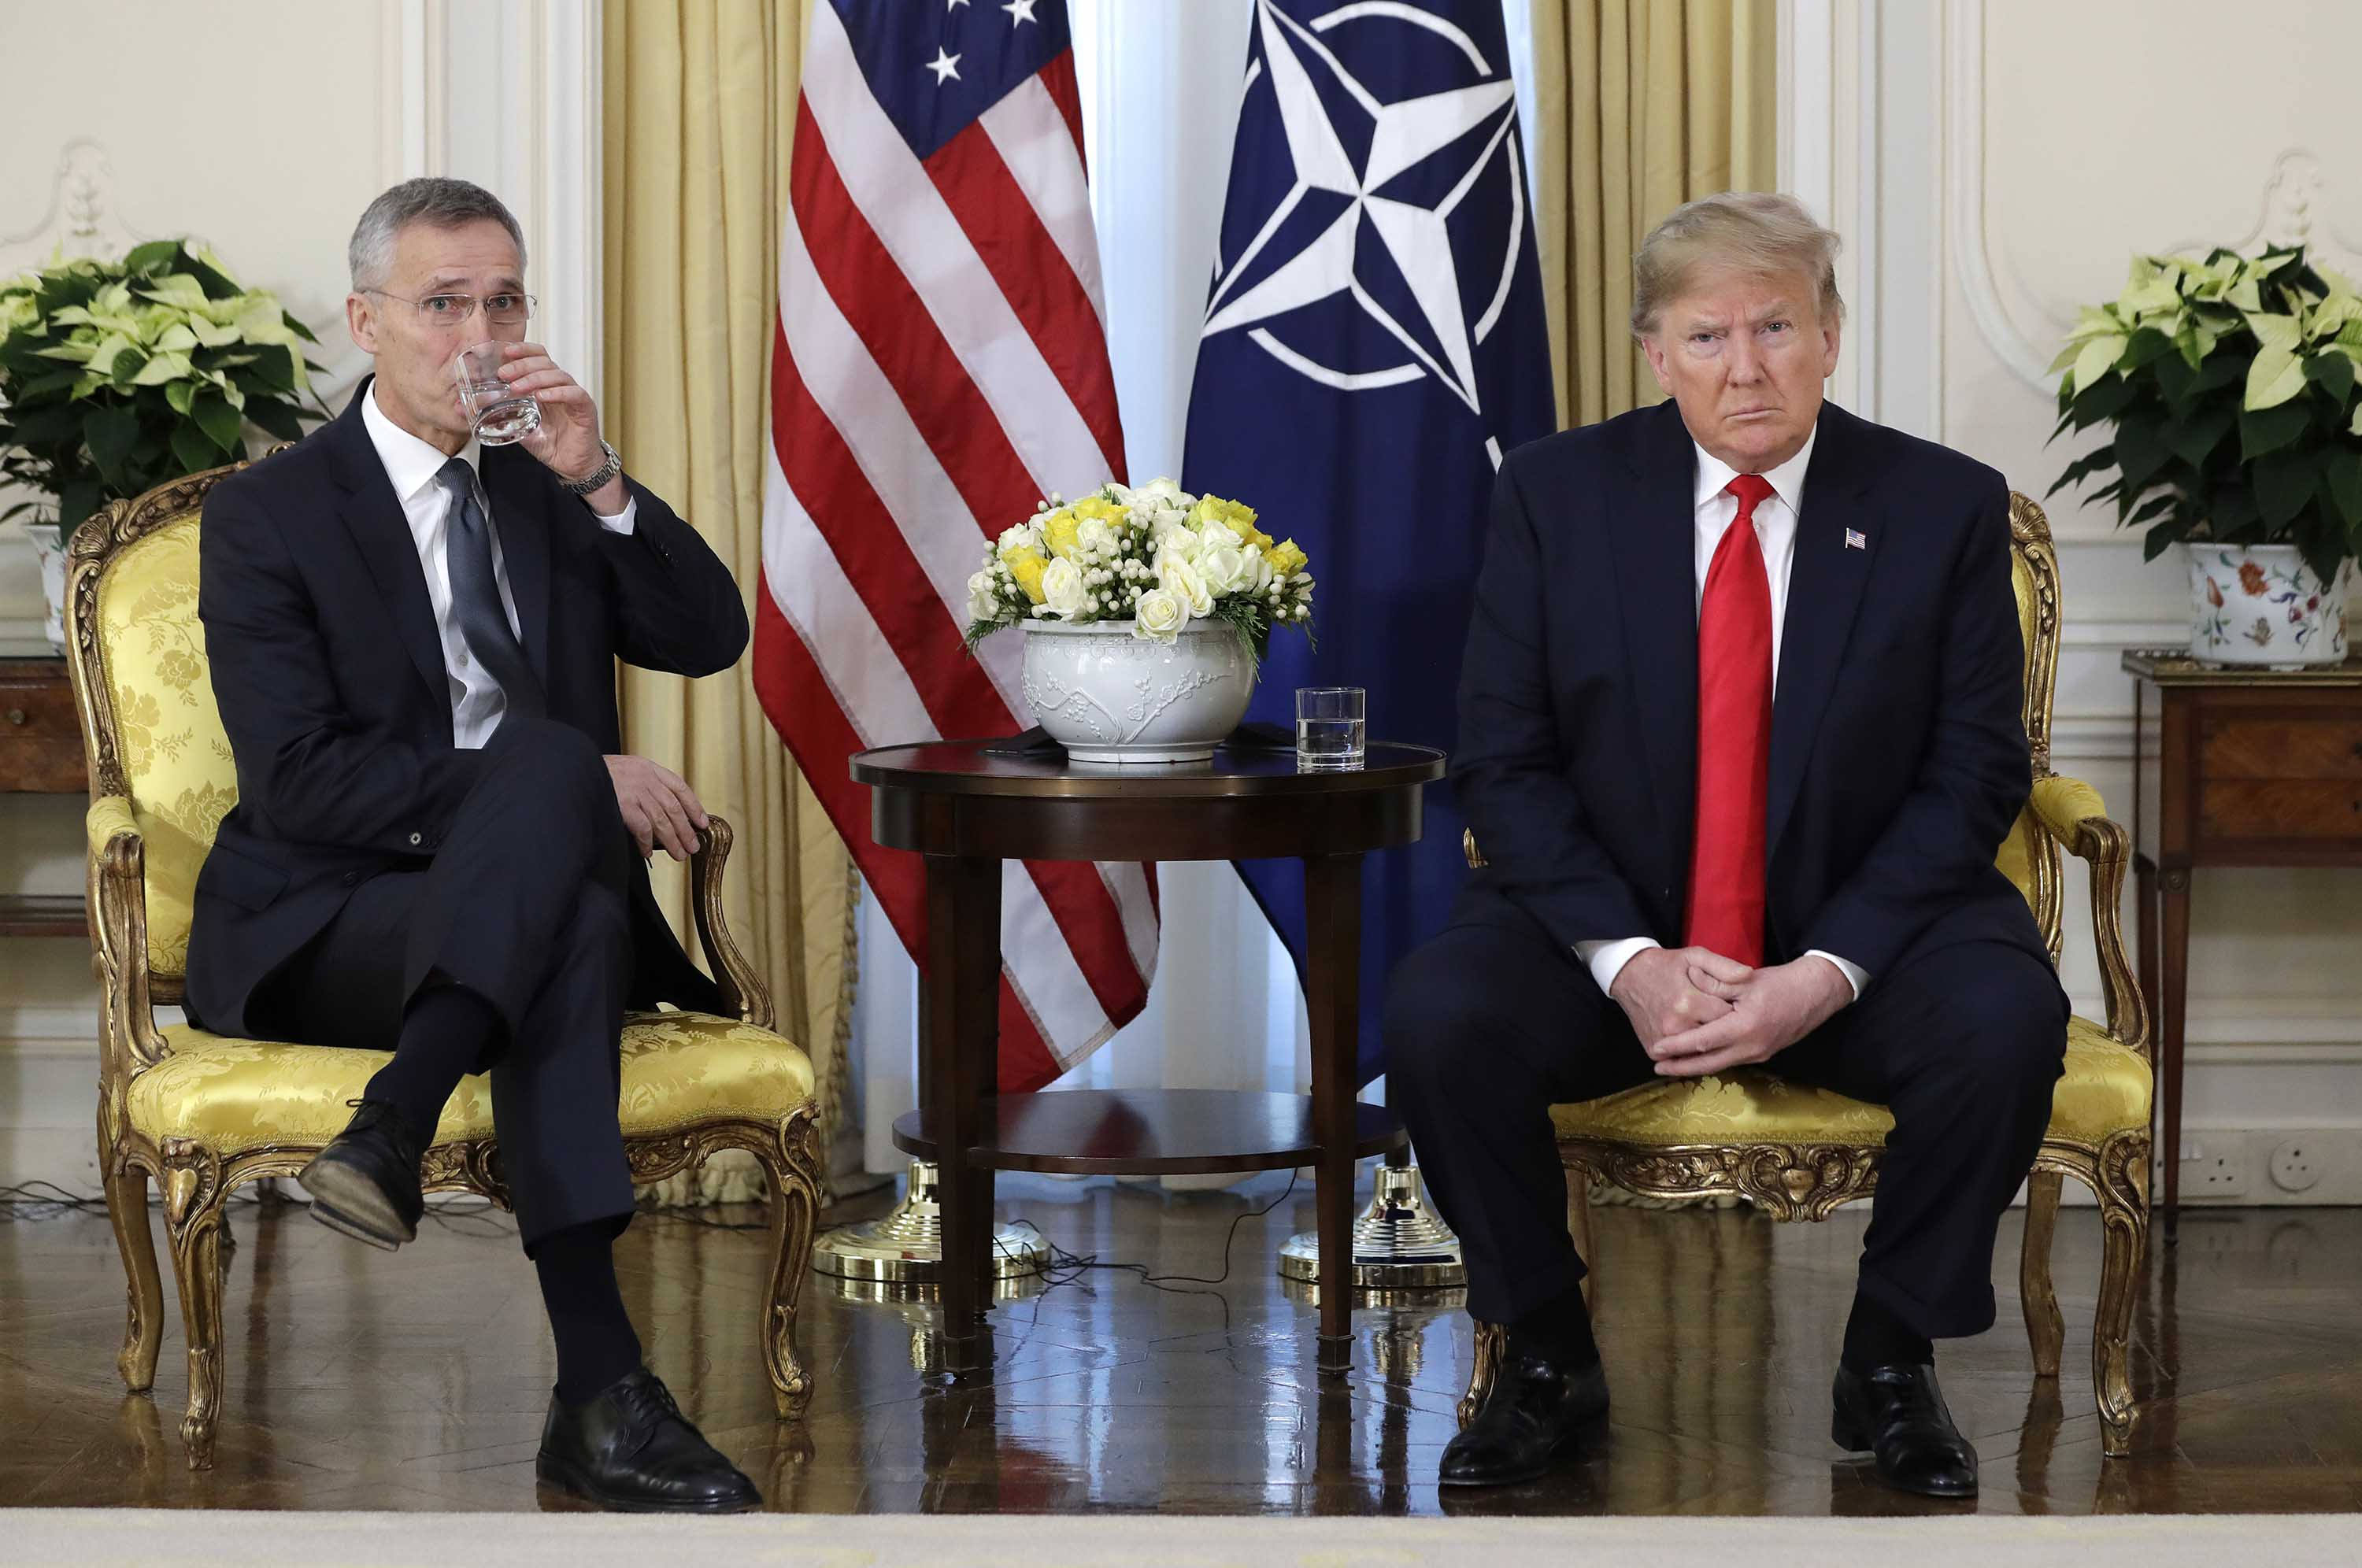 US President Donald Trump meets NATO Secretary General Jens Stoltenberg at Winfield House in London, England, on Tuesday. Photo: Evan Vucci/AP